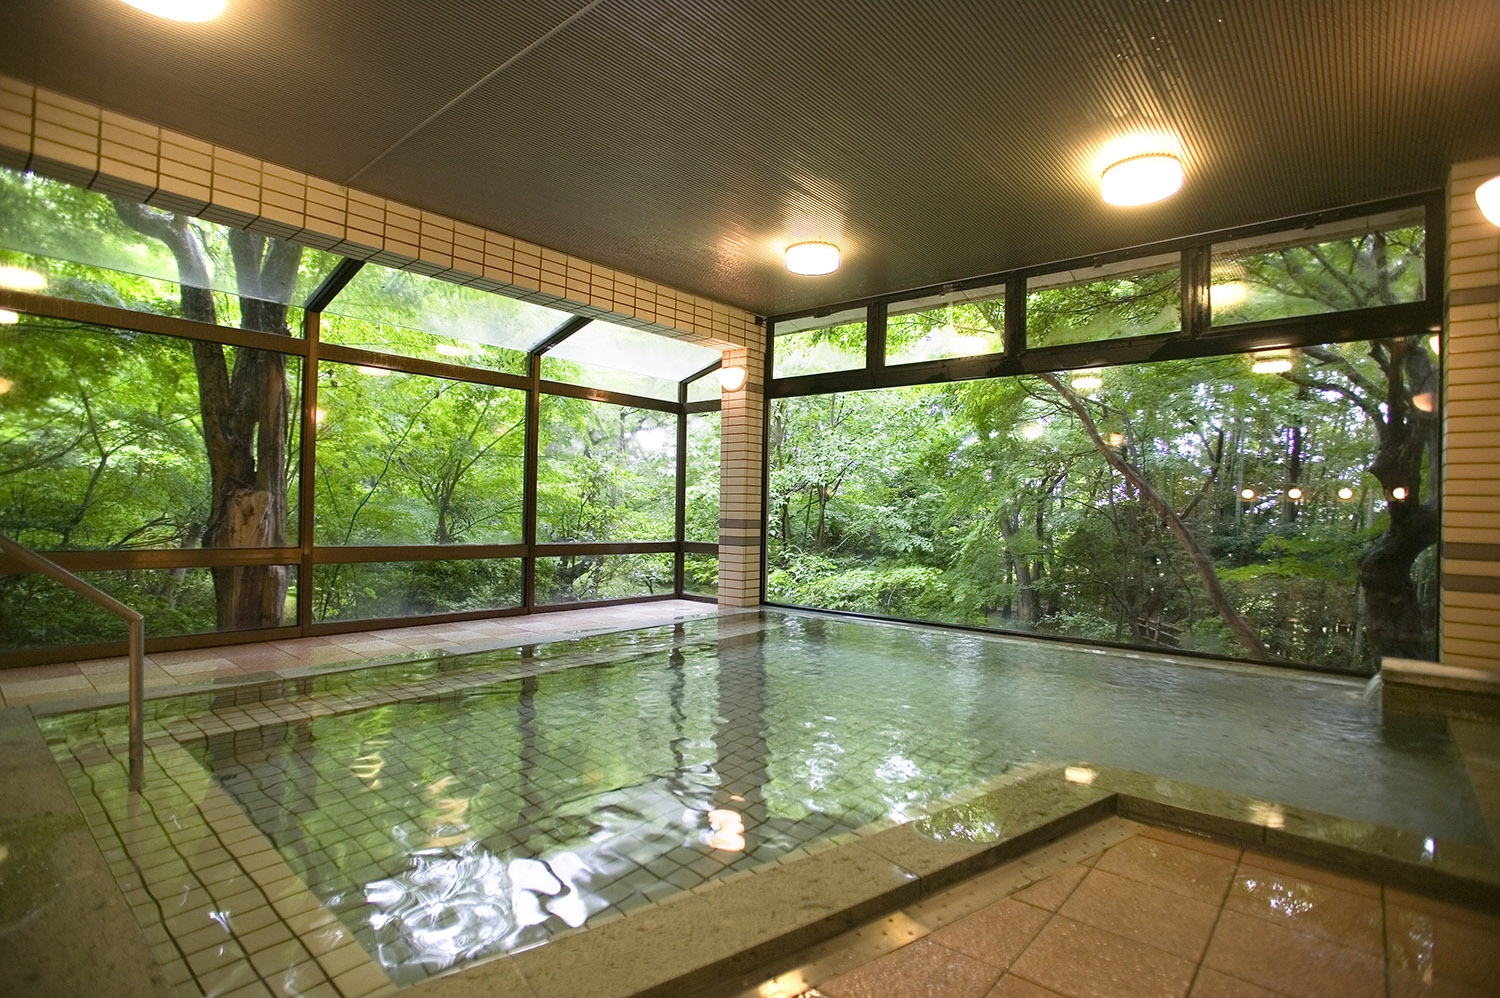 3 Hot spring (Communal bath) (8)_VillegaMag_Masae_Hara_for_Beniya_Mukayu_Japan